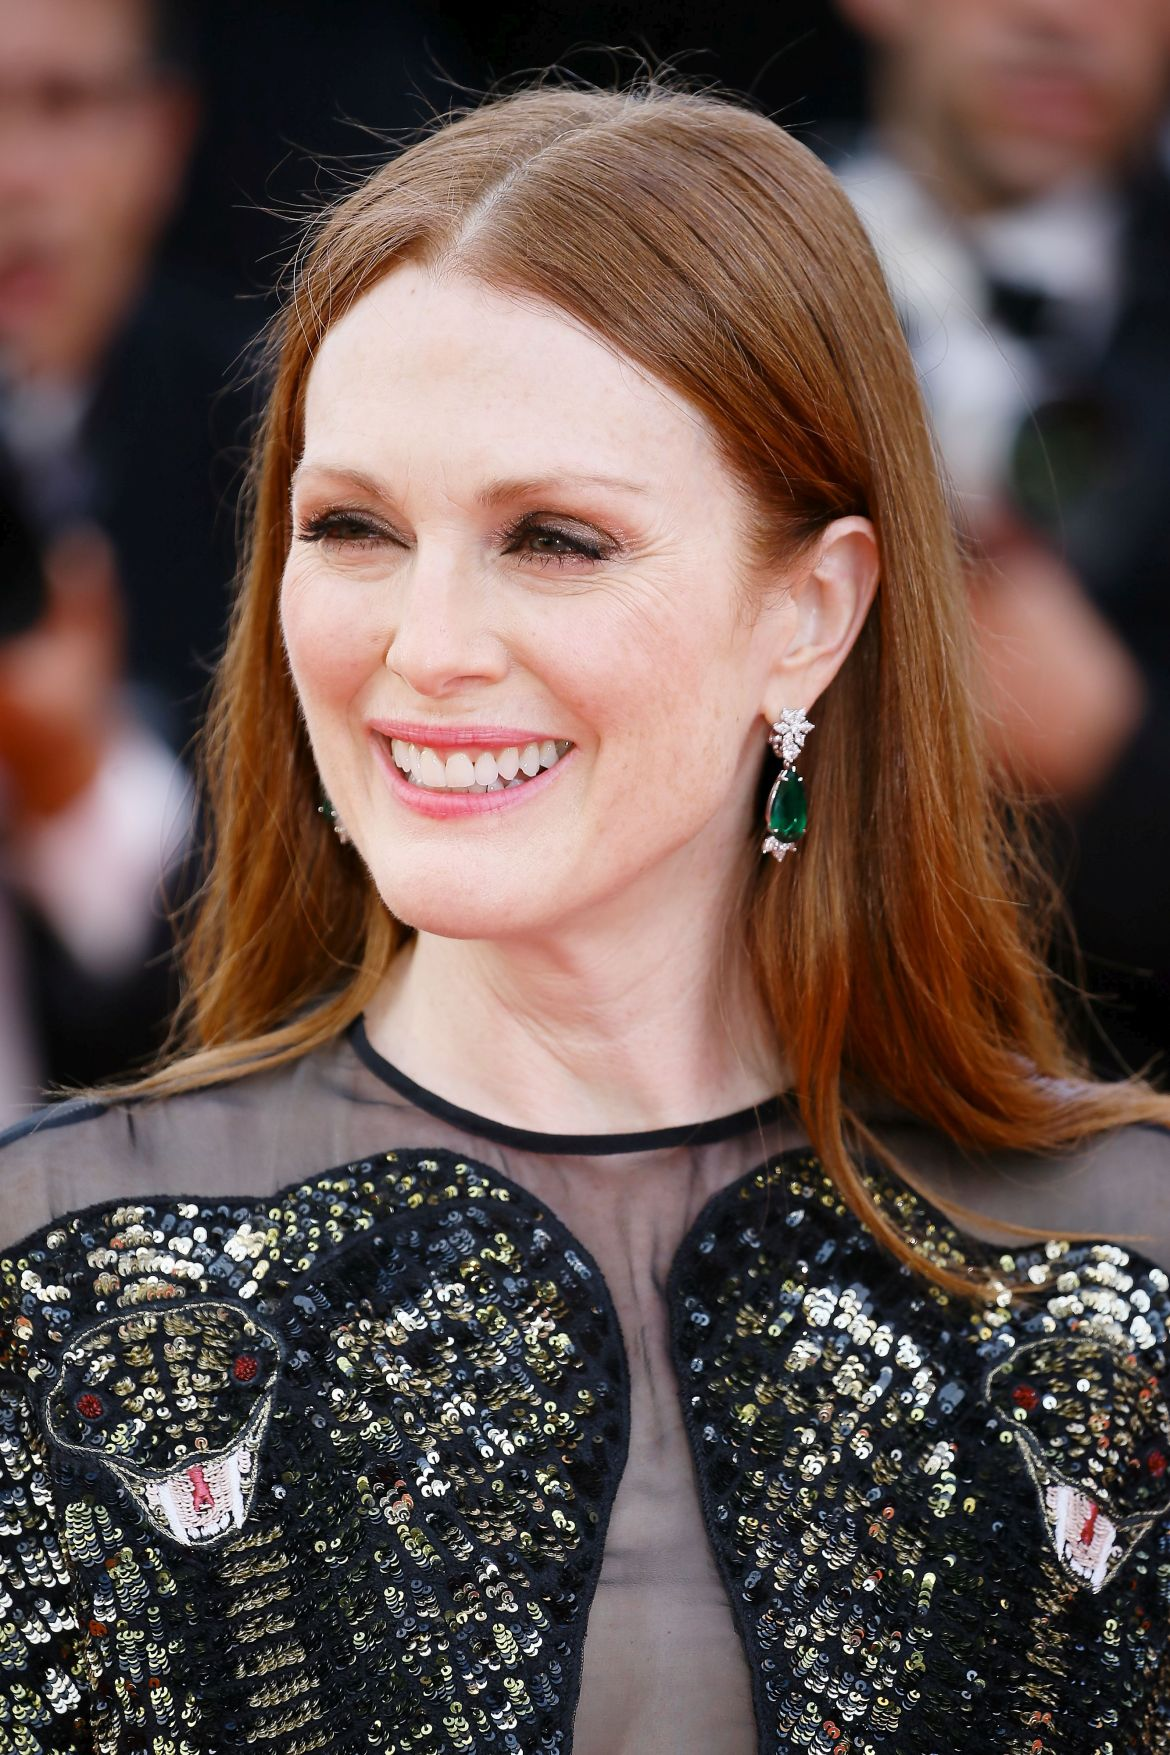 CANNES, FRANCE - MAY 11: Julianne Moore attends the opening gala dinner of the annual 69th Cannes Film Festival at Palais des Festivals on May 11, 2016 in Cannes, France. (Photo by Epsilon/Getty Images)